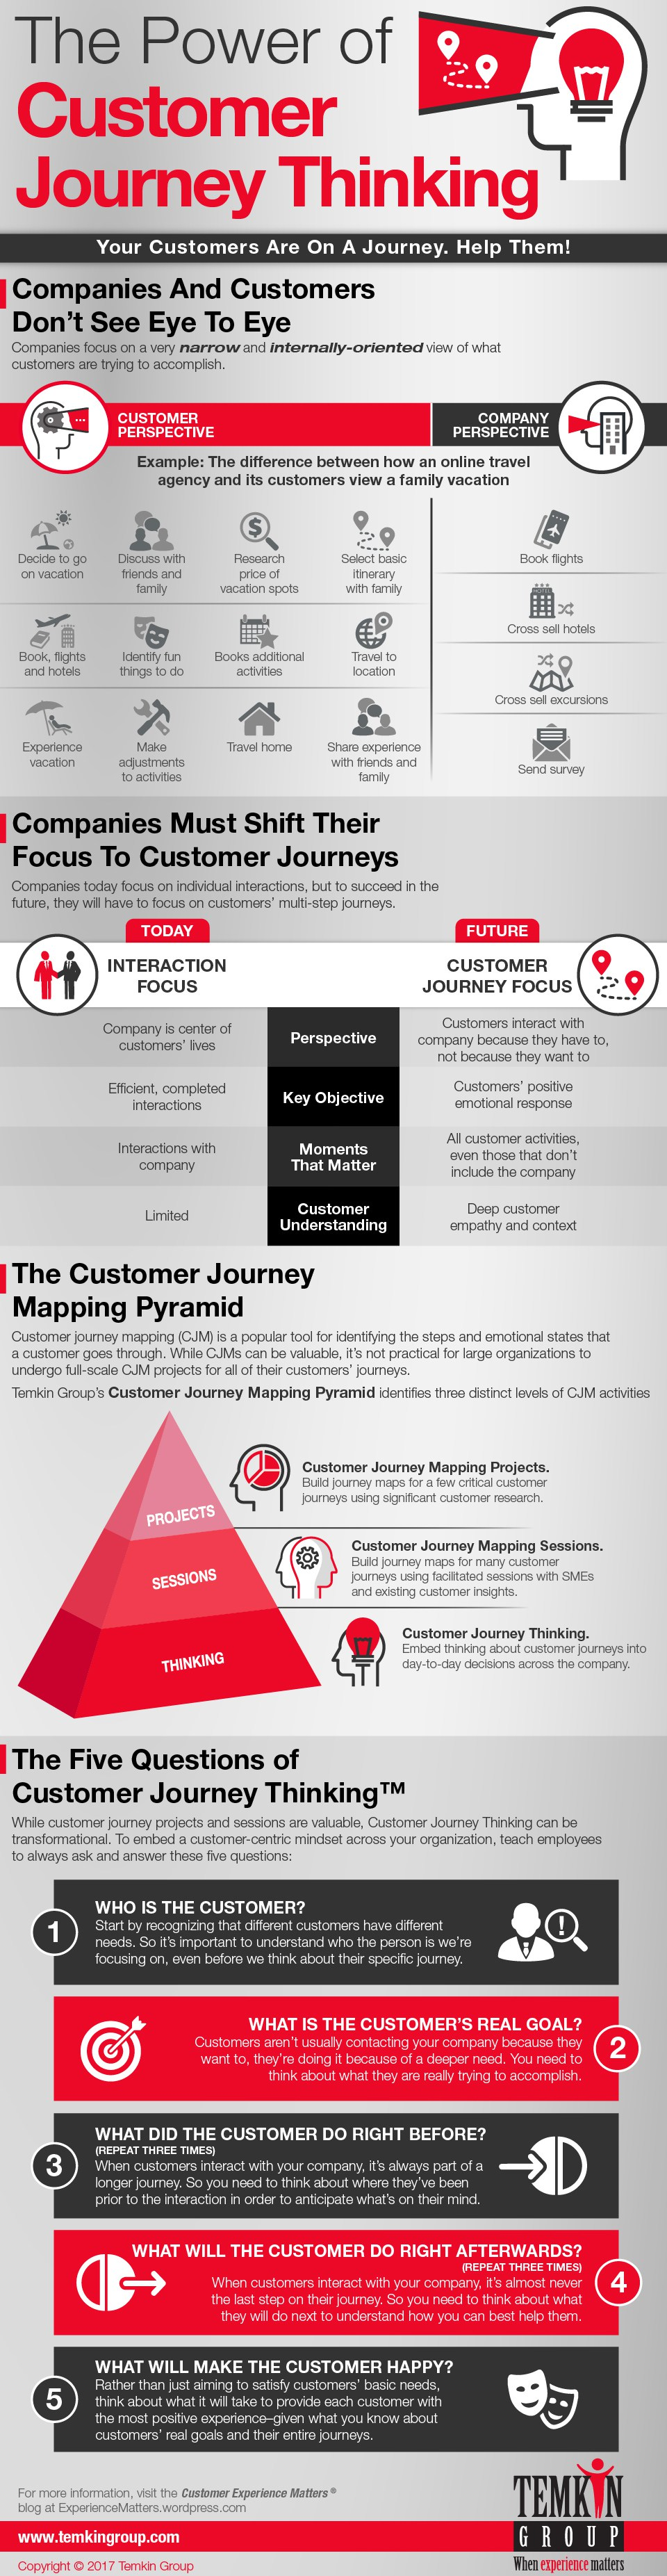 Power of Customer Journey Thinking